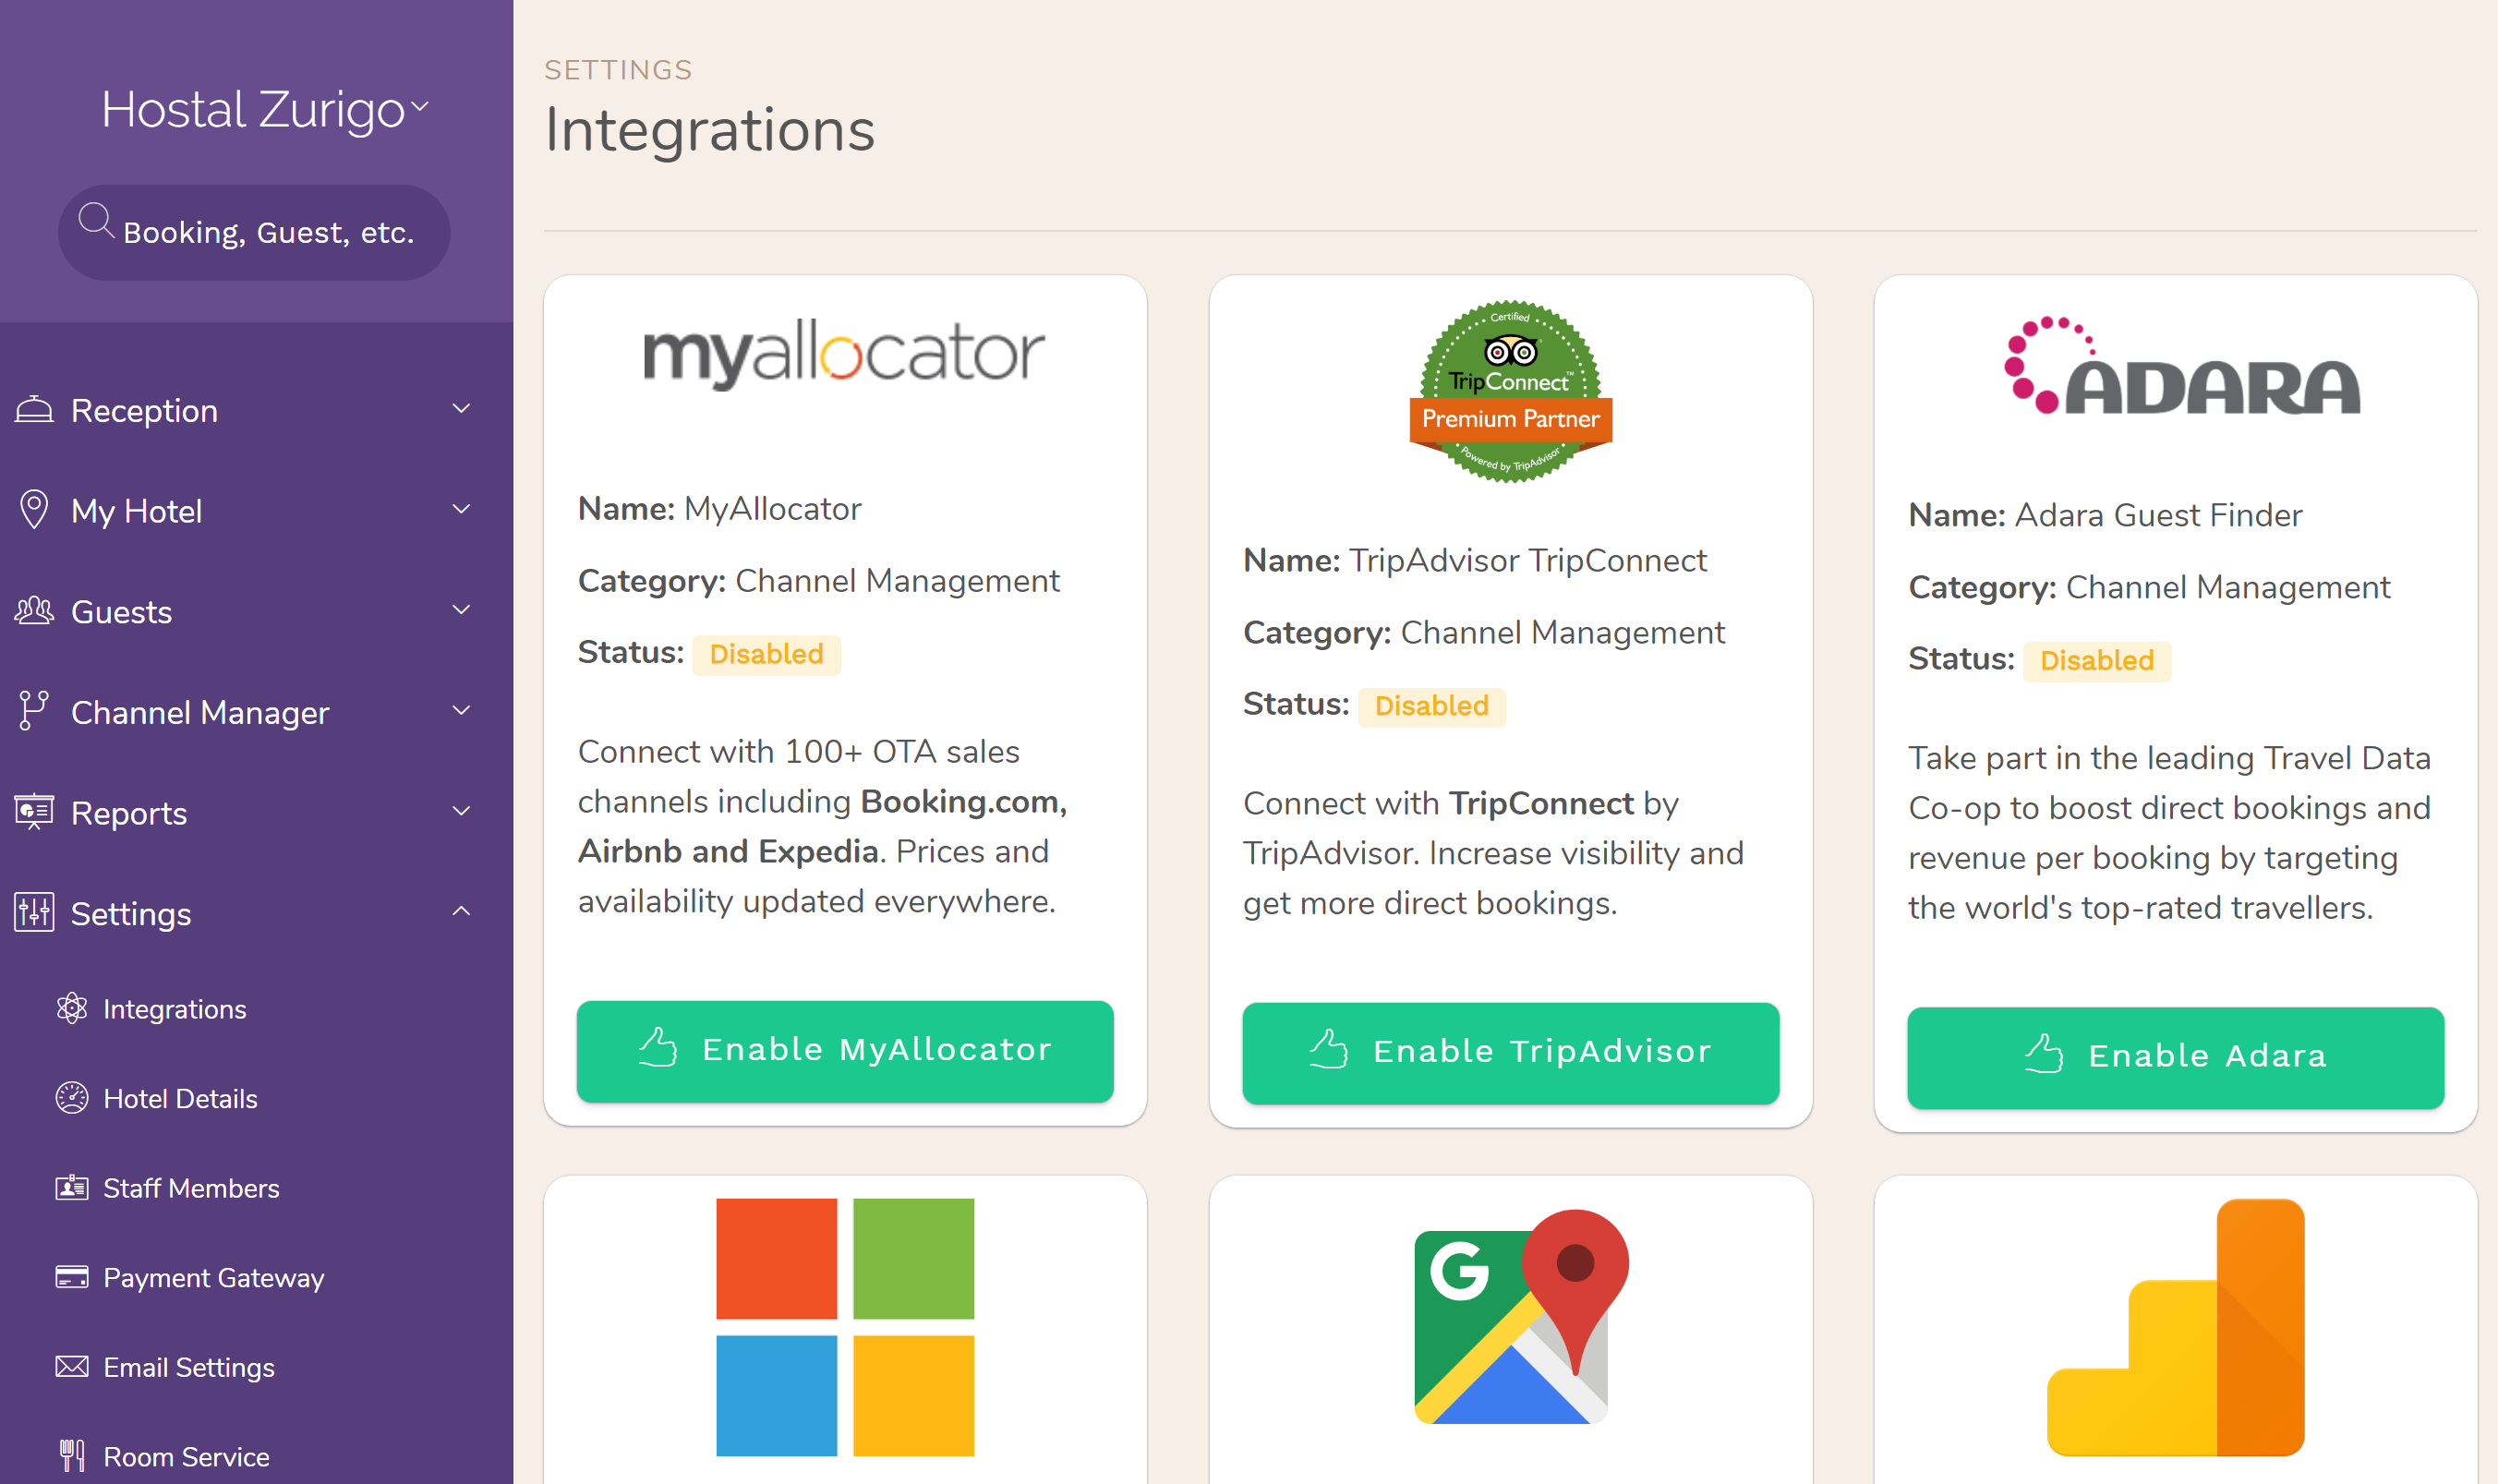 Hotel PMS Software integrations available with our platform. The available integrations are found throughout the application, each in their corresponding place. For example, TripAdvisor connectivity is under 'Channel Manager > OTA Connections.